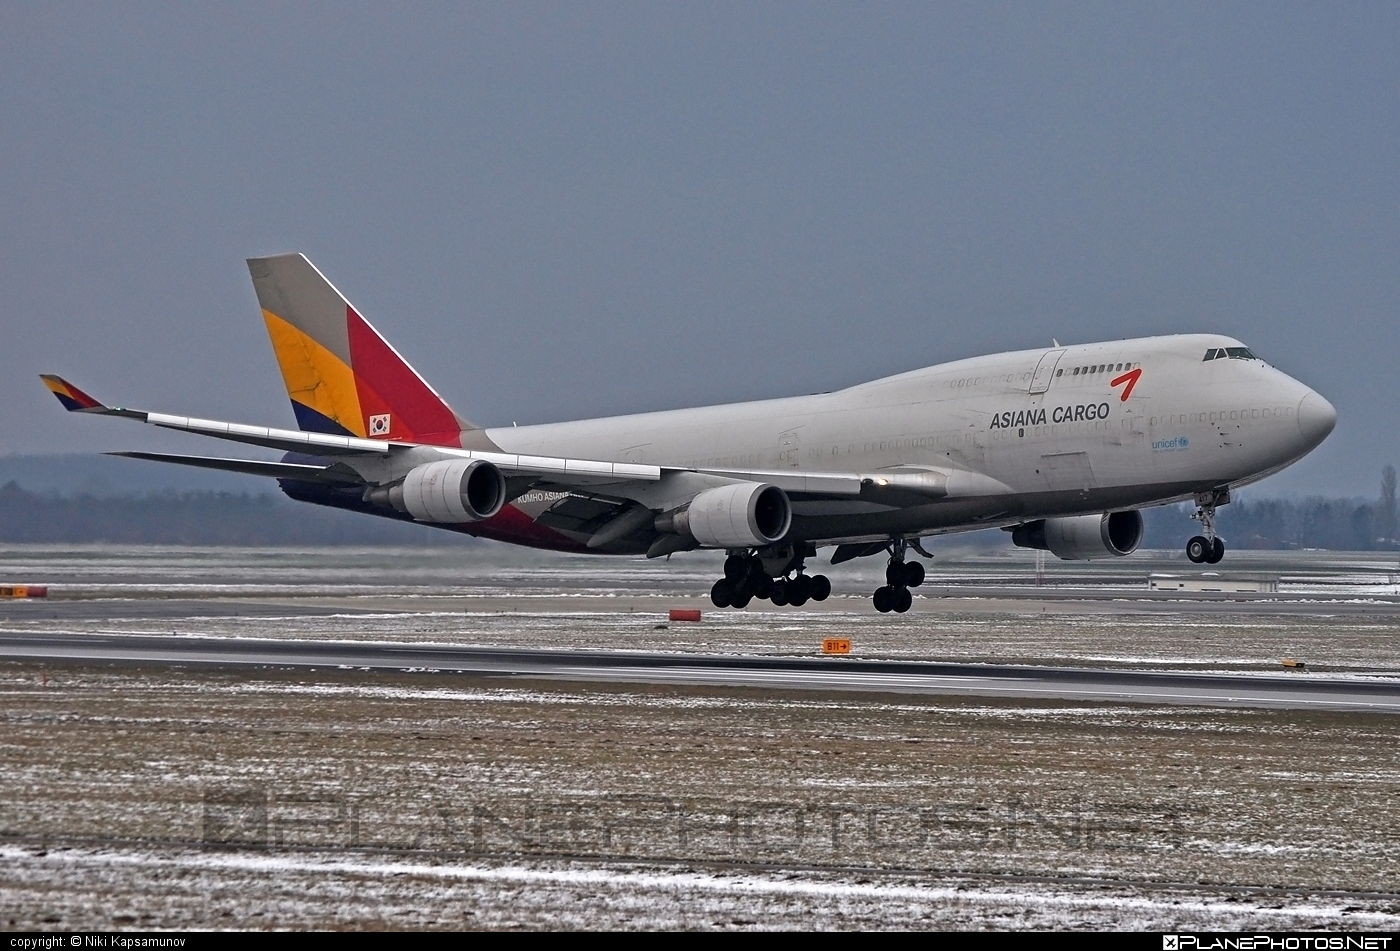 Boeing 747-400BDSF - HL7417 operated by Asiana Cargo #asianacargo #b747 #b747bdsf #b747freighter #bedekspecialfreighter #boeing #boeing747 #jumbo